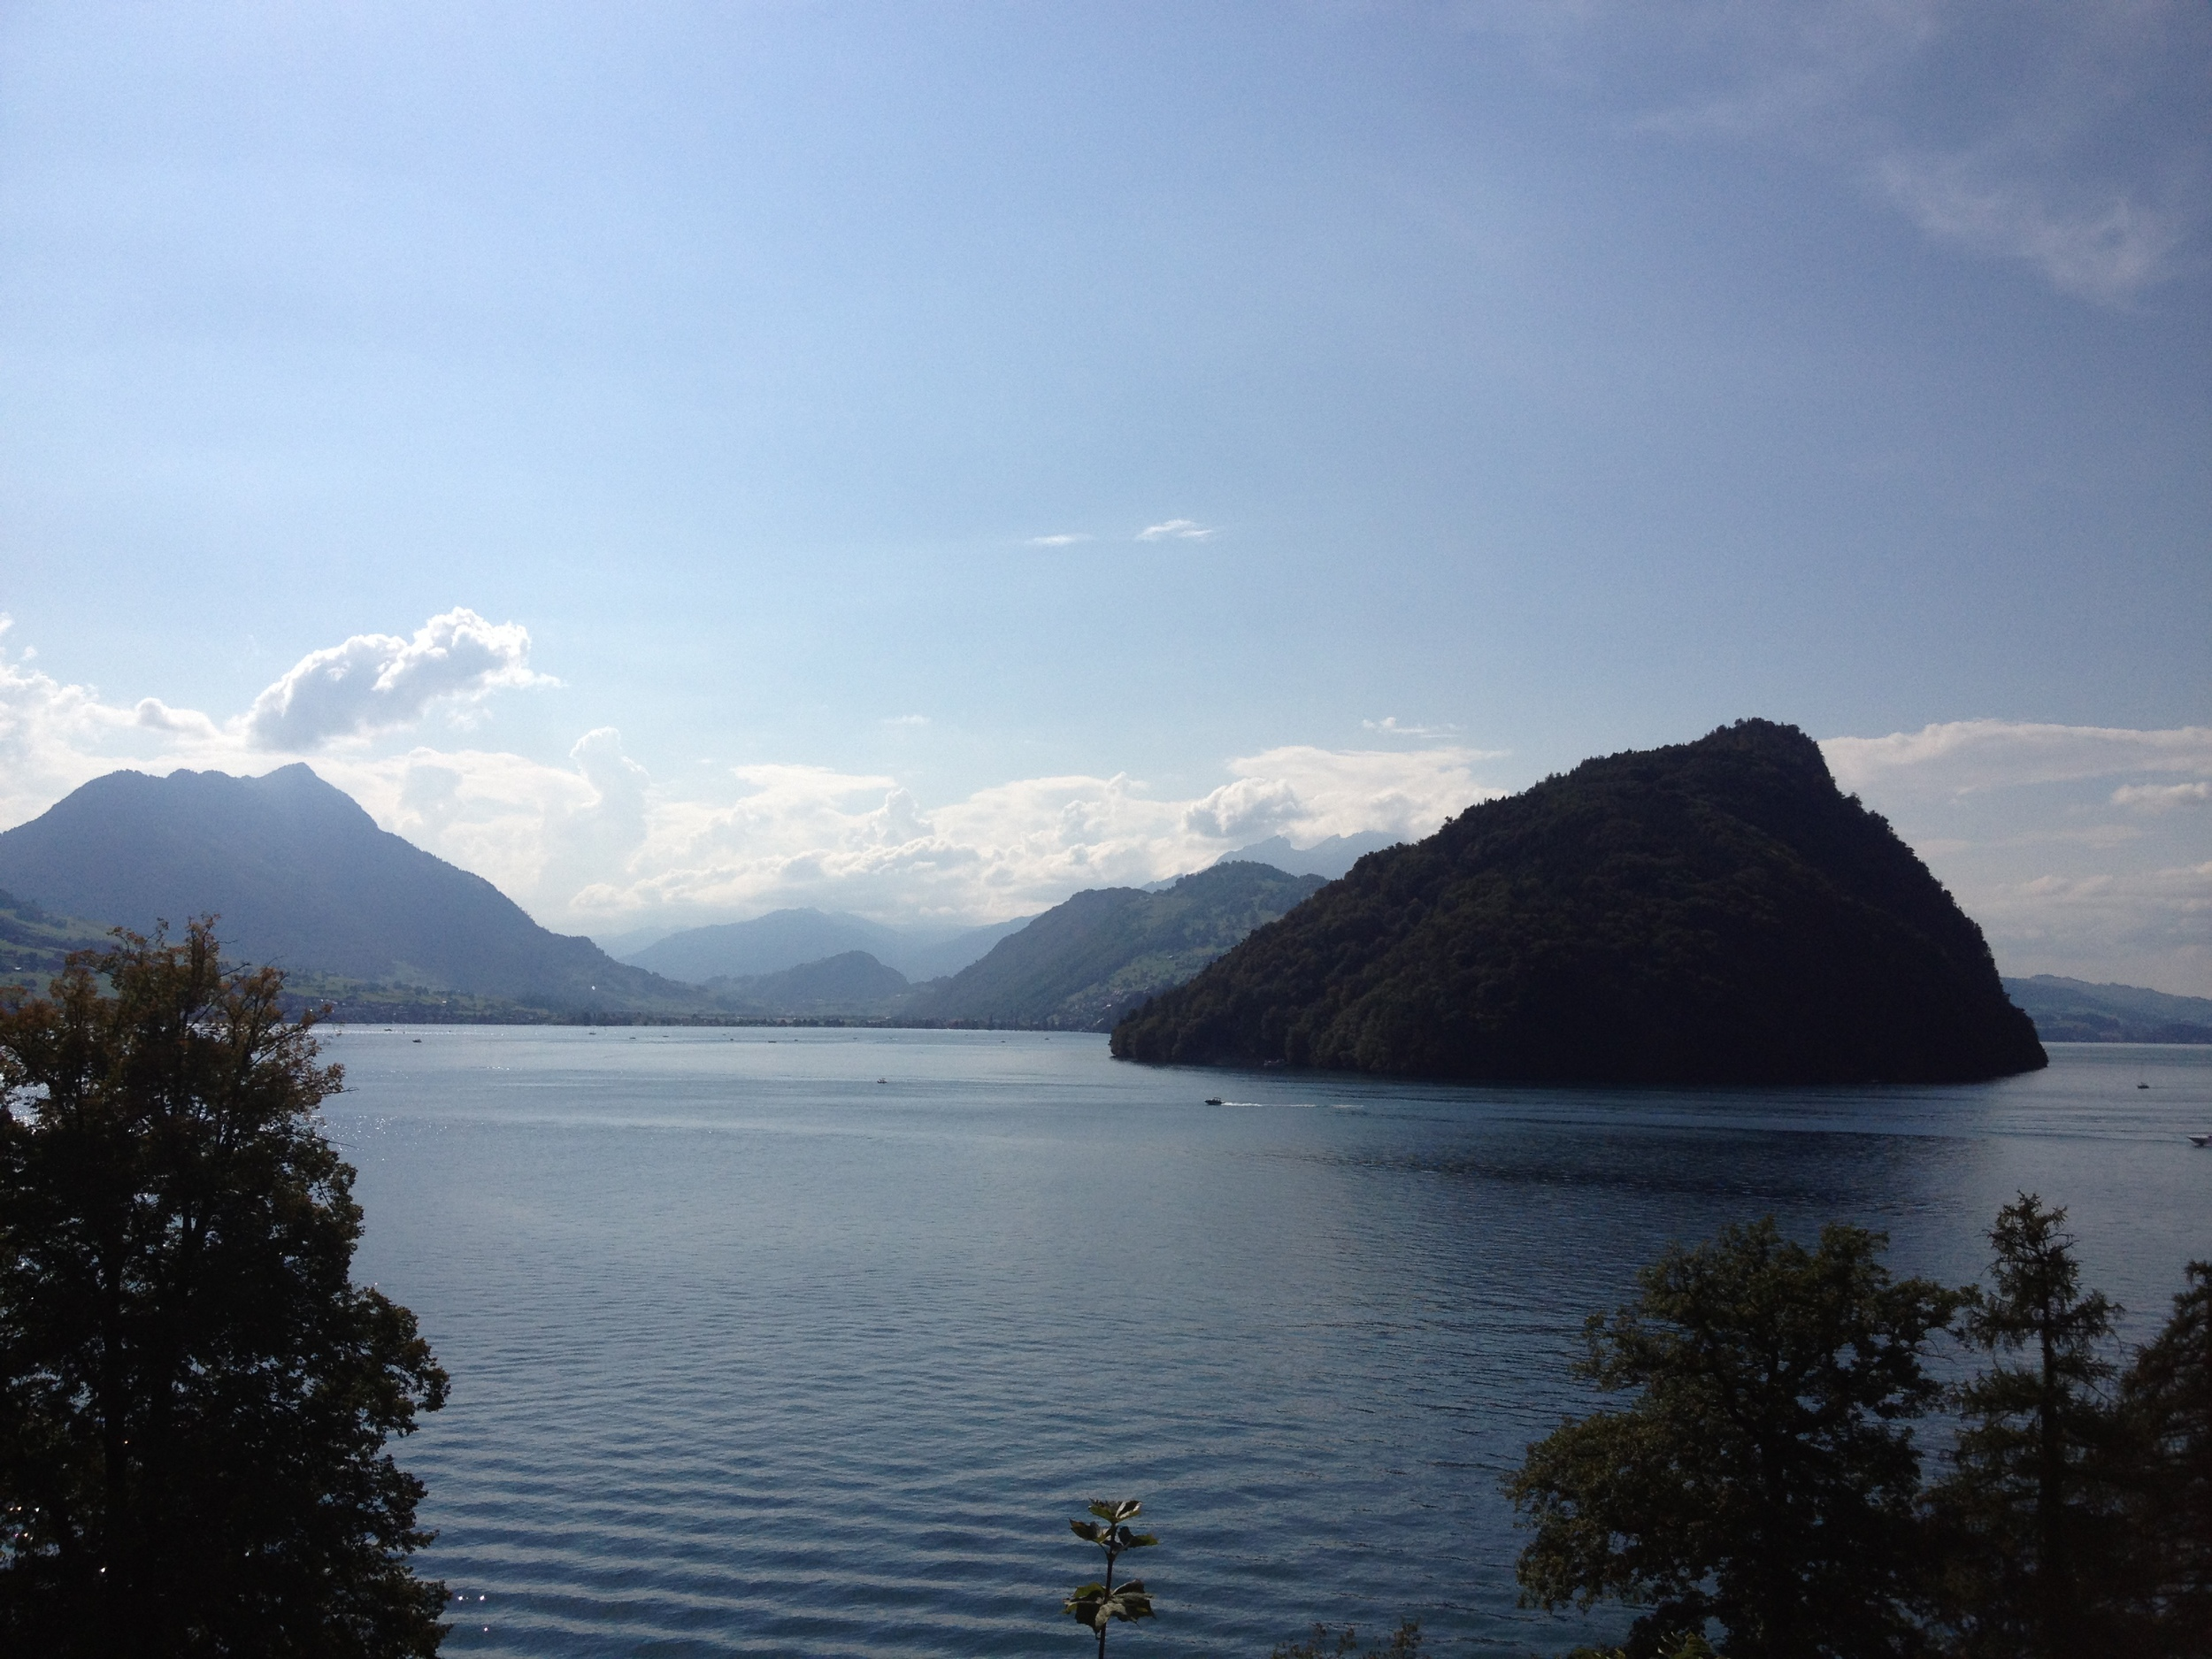 A view of theVierwaldstättersee